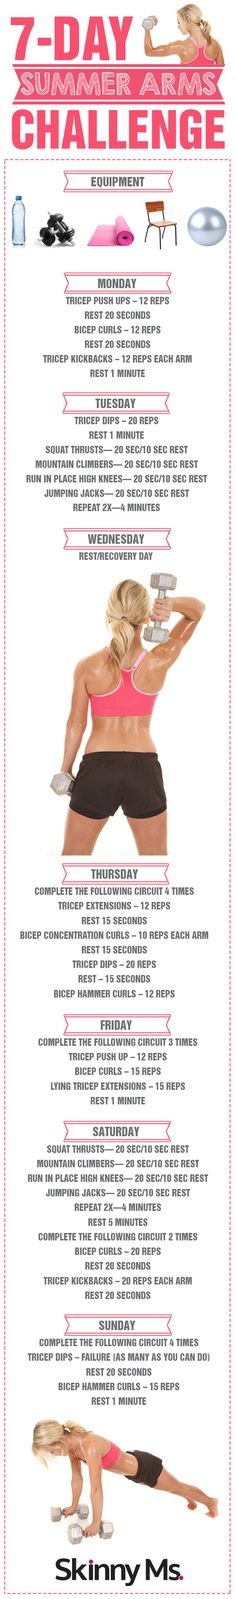 Arms Challenge - Seven Day Arm Workout Routine for Women 7 Day Summer Arms Challenge - there is no better time to get those beautifully toned and defined Day Summer Arms Challenge - there is no better time to get those beautifully toned and defined arms! Fitness Motivation, Fitness Diet, Health Fitness, Lifting Motivation, Fitness Plan, Arm Challenge, Workout Challenge, Workout Plans, Challenge Accepted